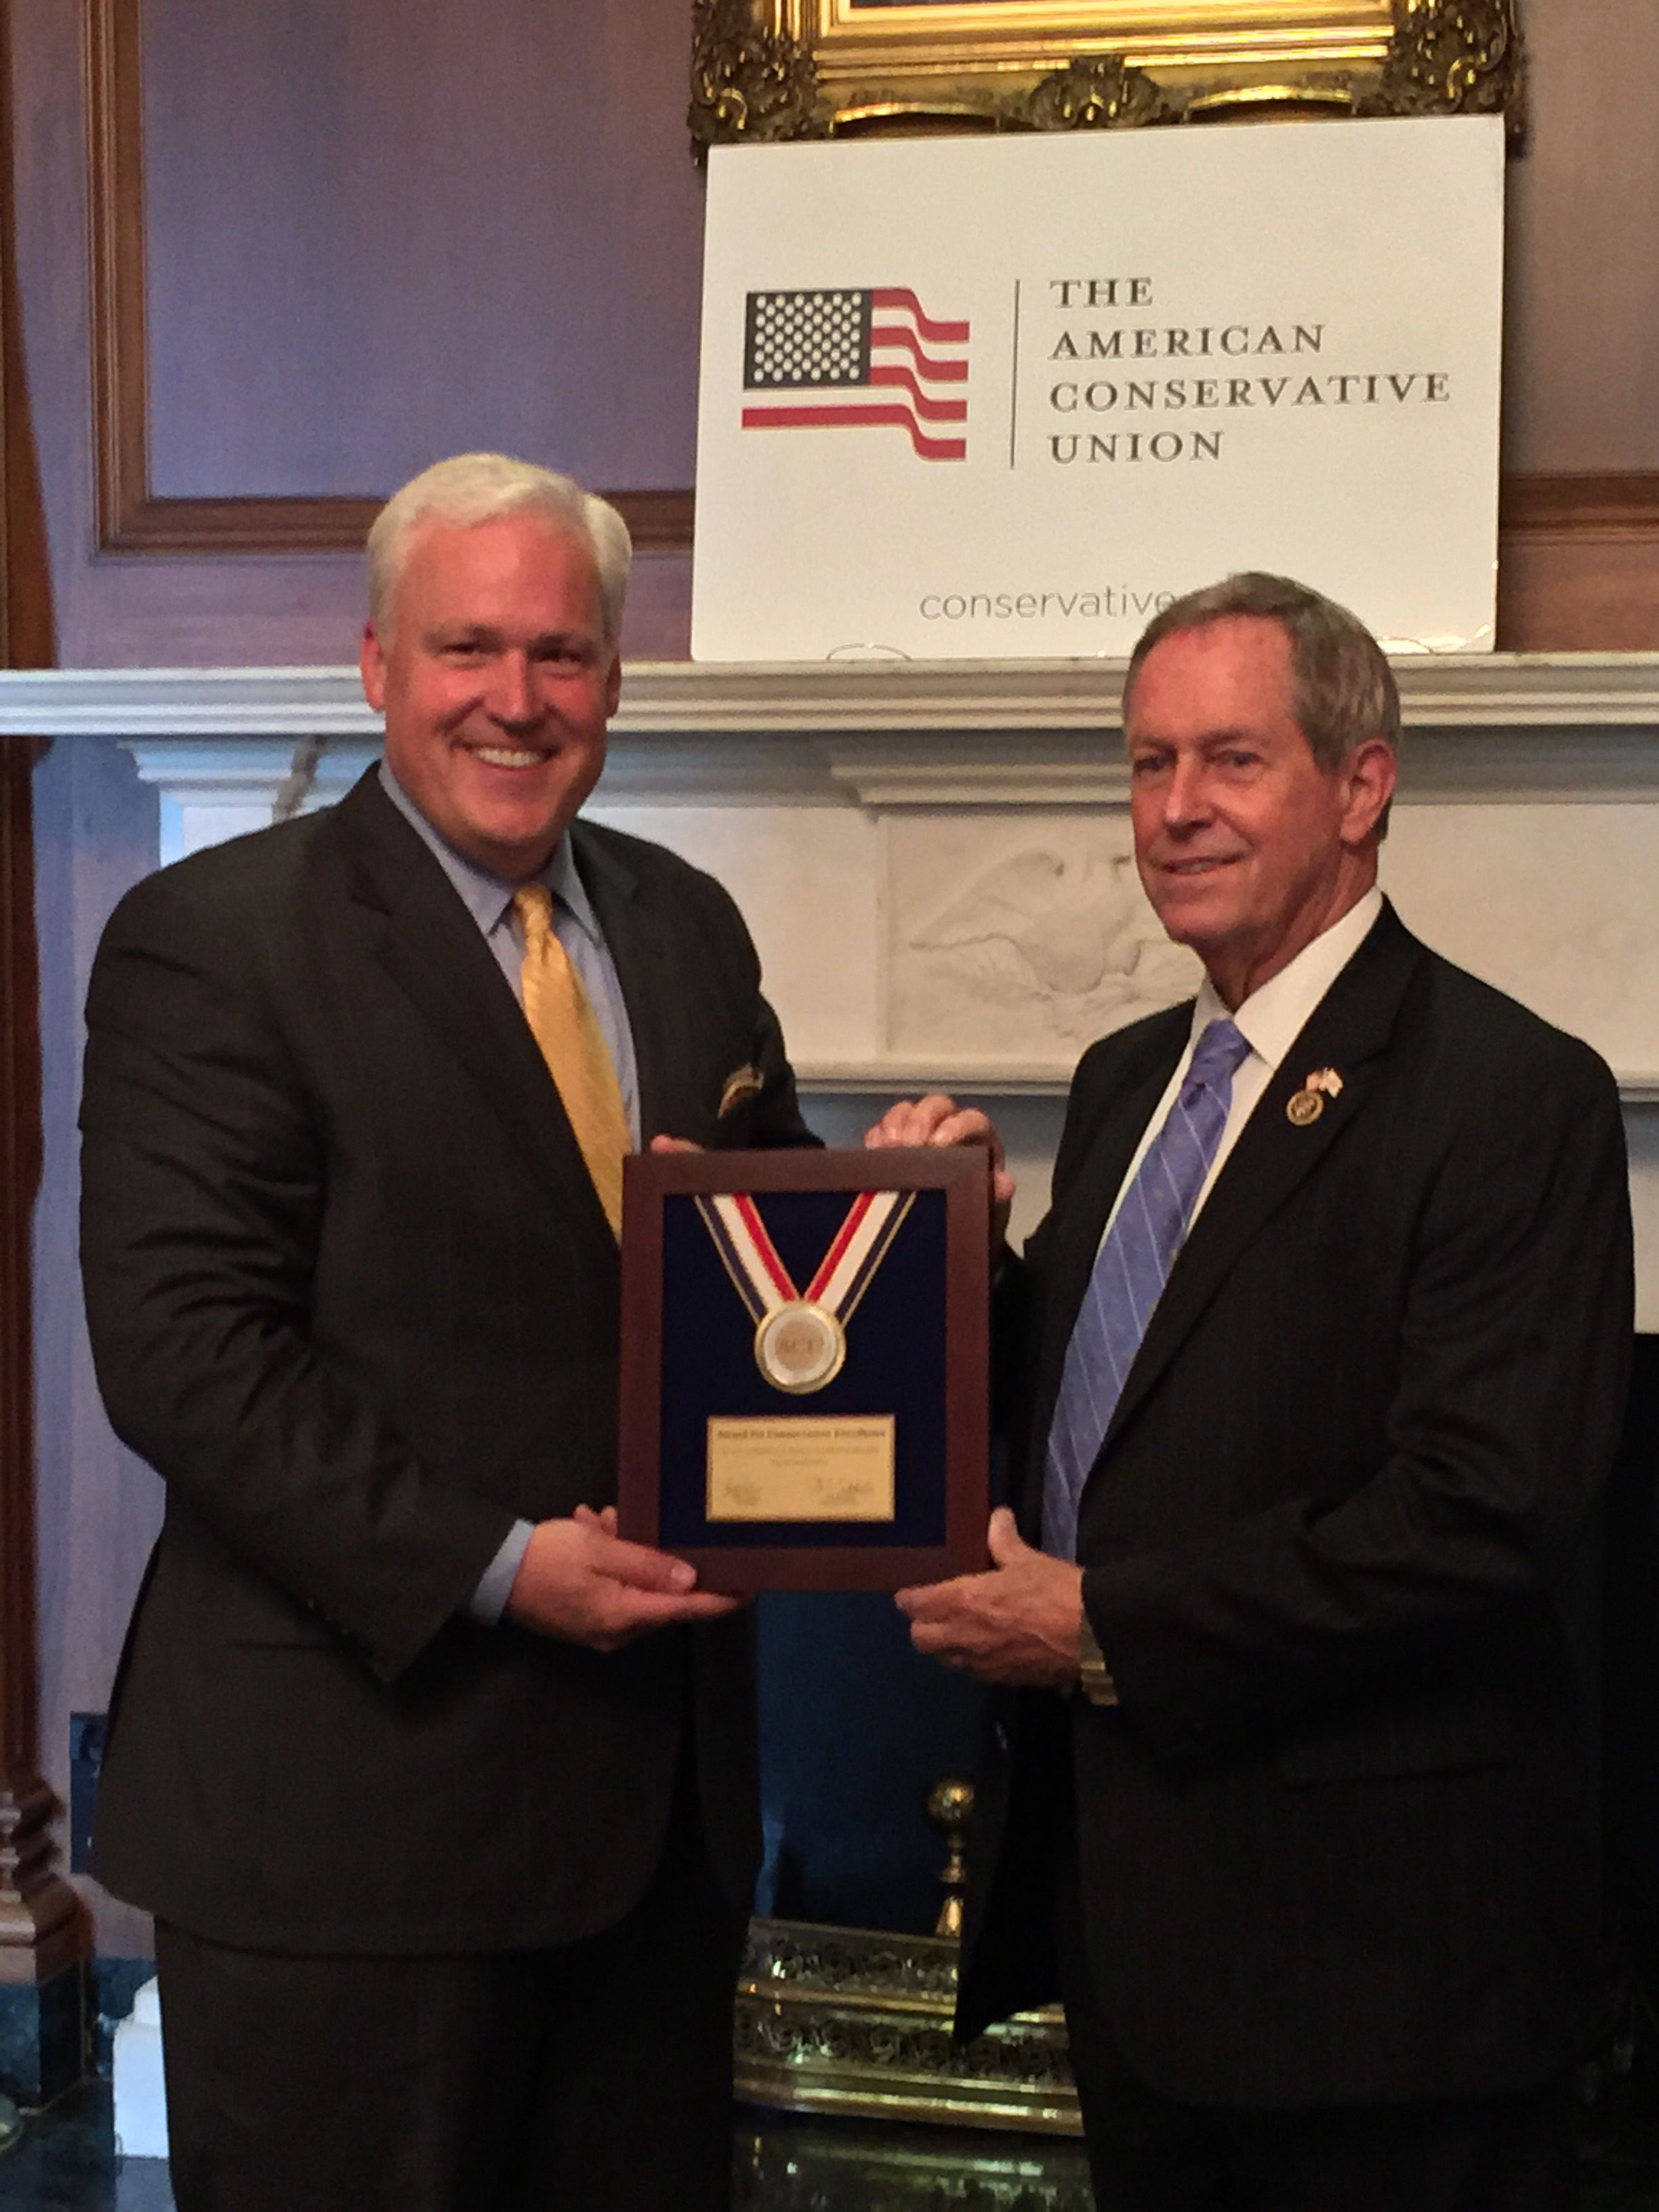 ACU Chairman Matt Schlapp presents the  2014 ACU Conservative award to Congressman Joe Wilson.